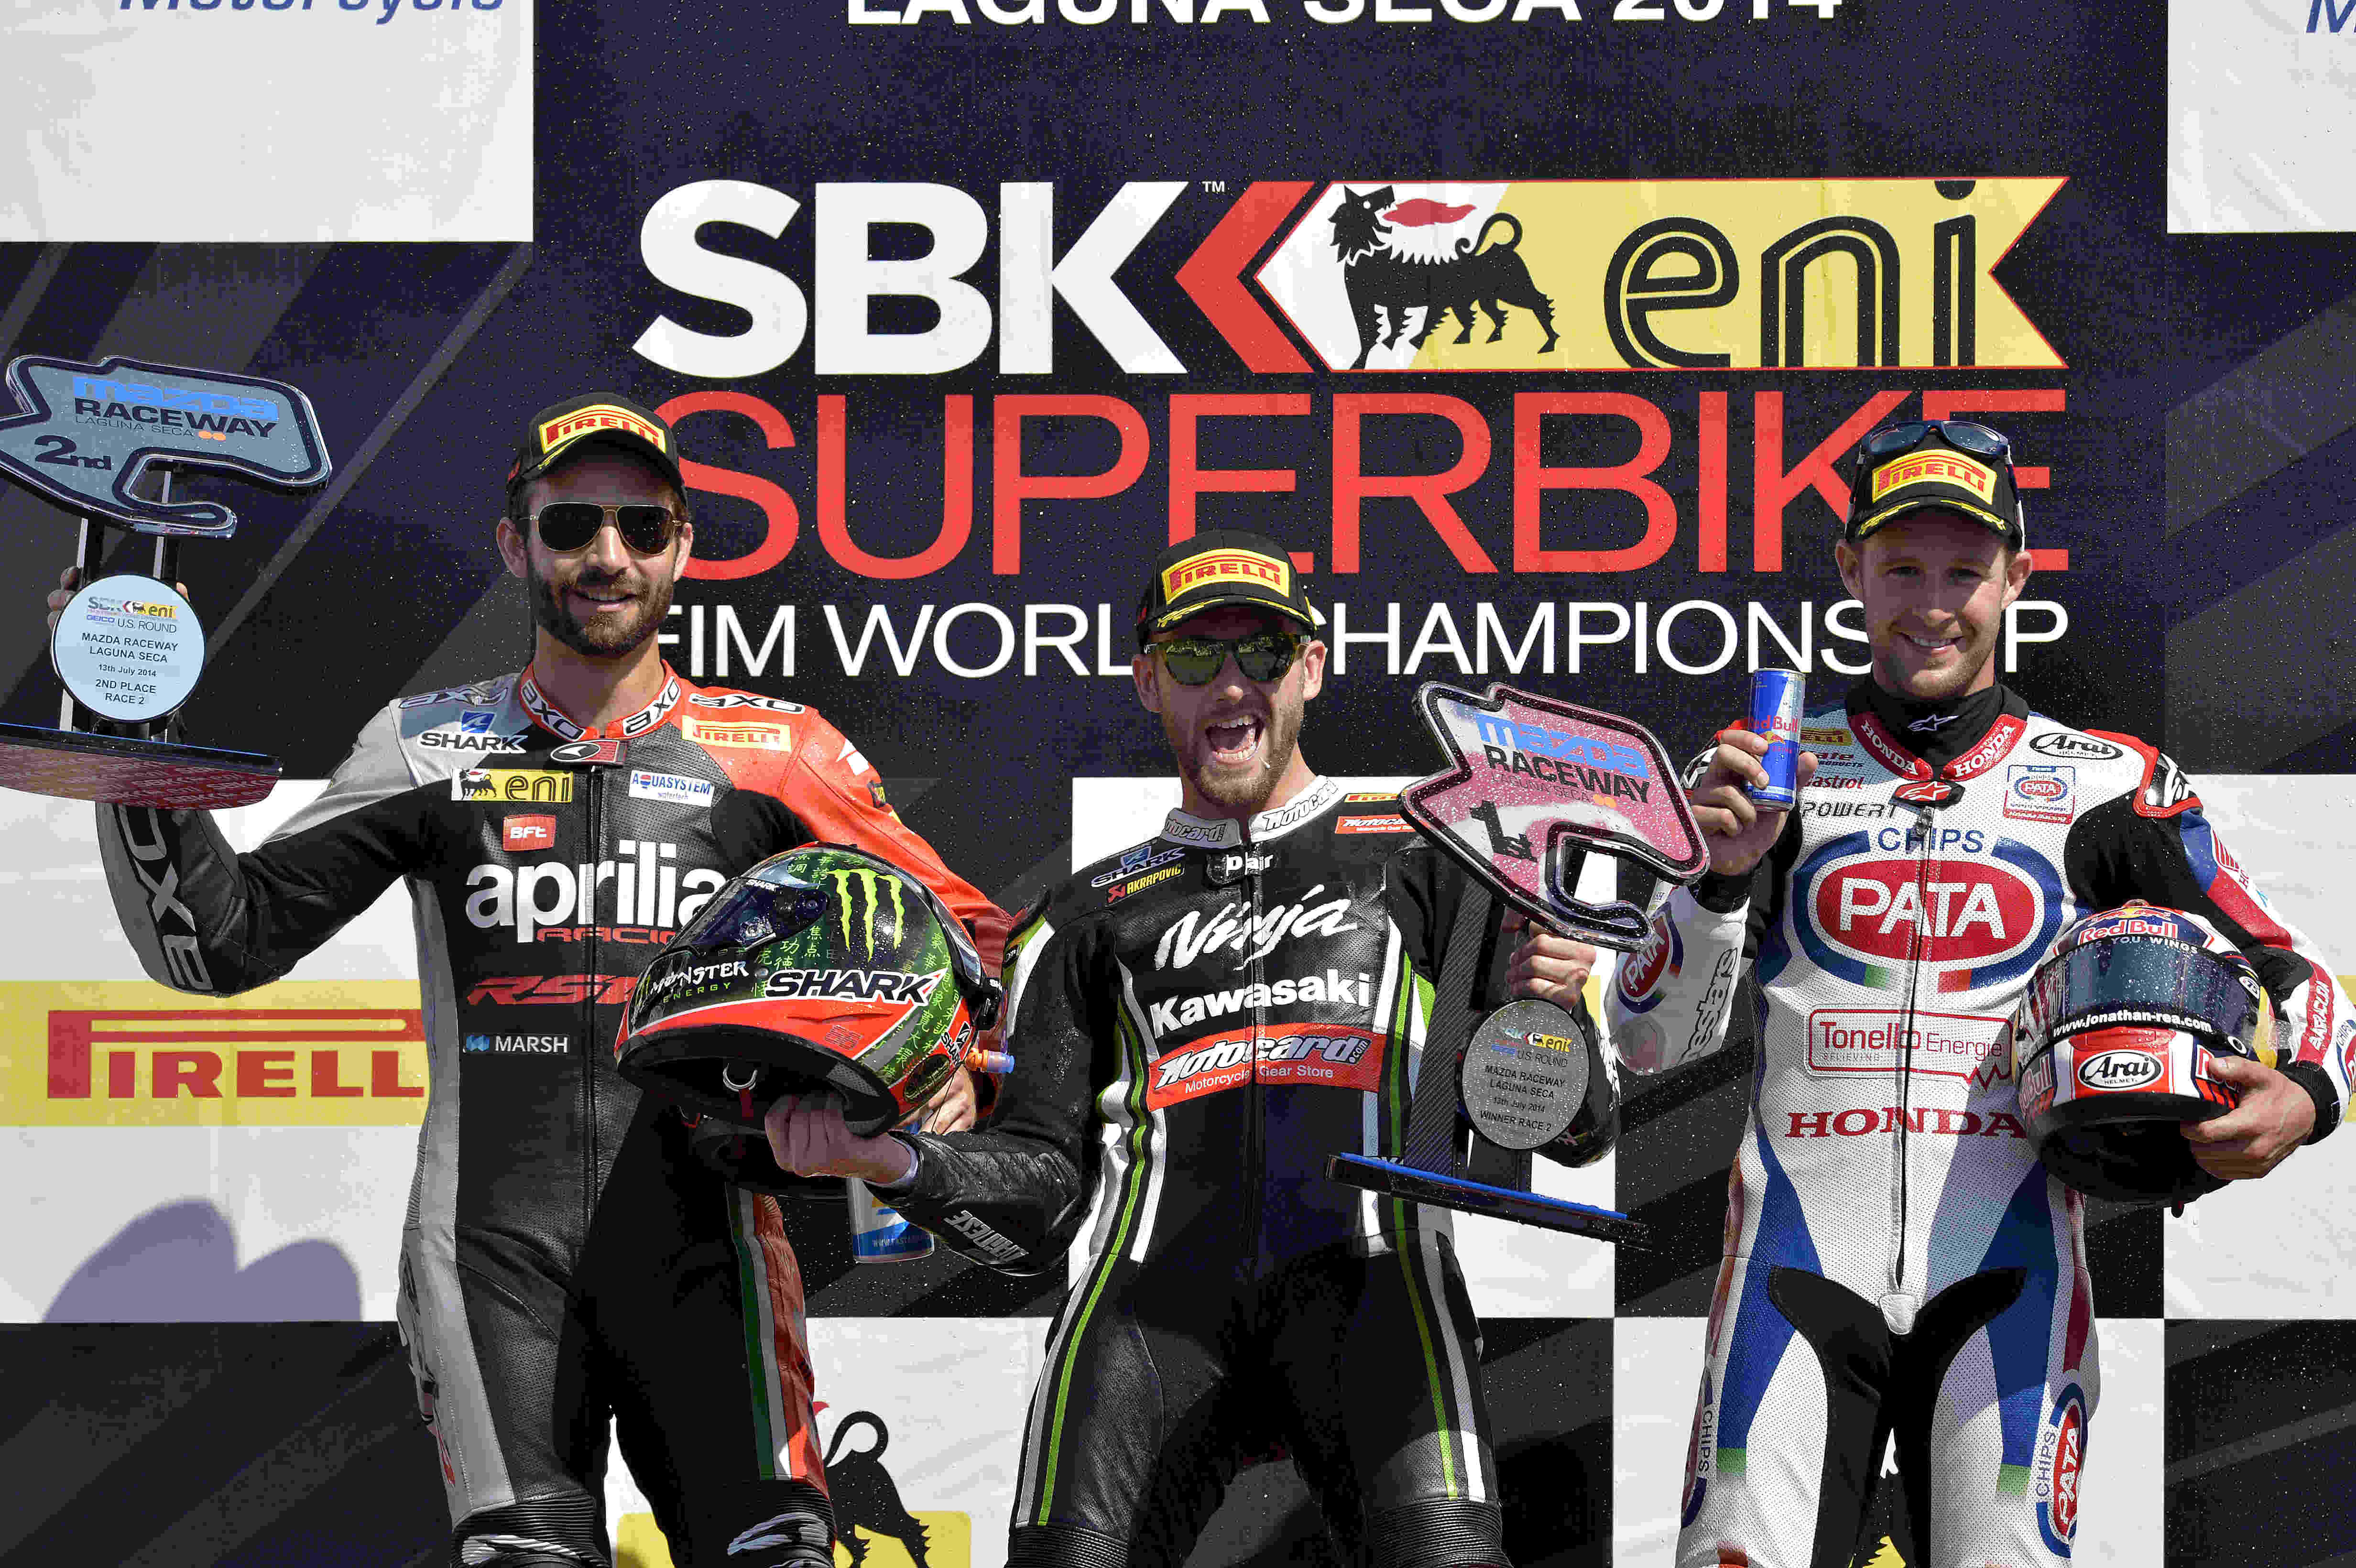 WSBK: Sykes maintains championship lead as he wins a hectic race two at Laguna Seca